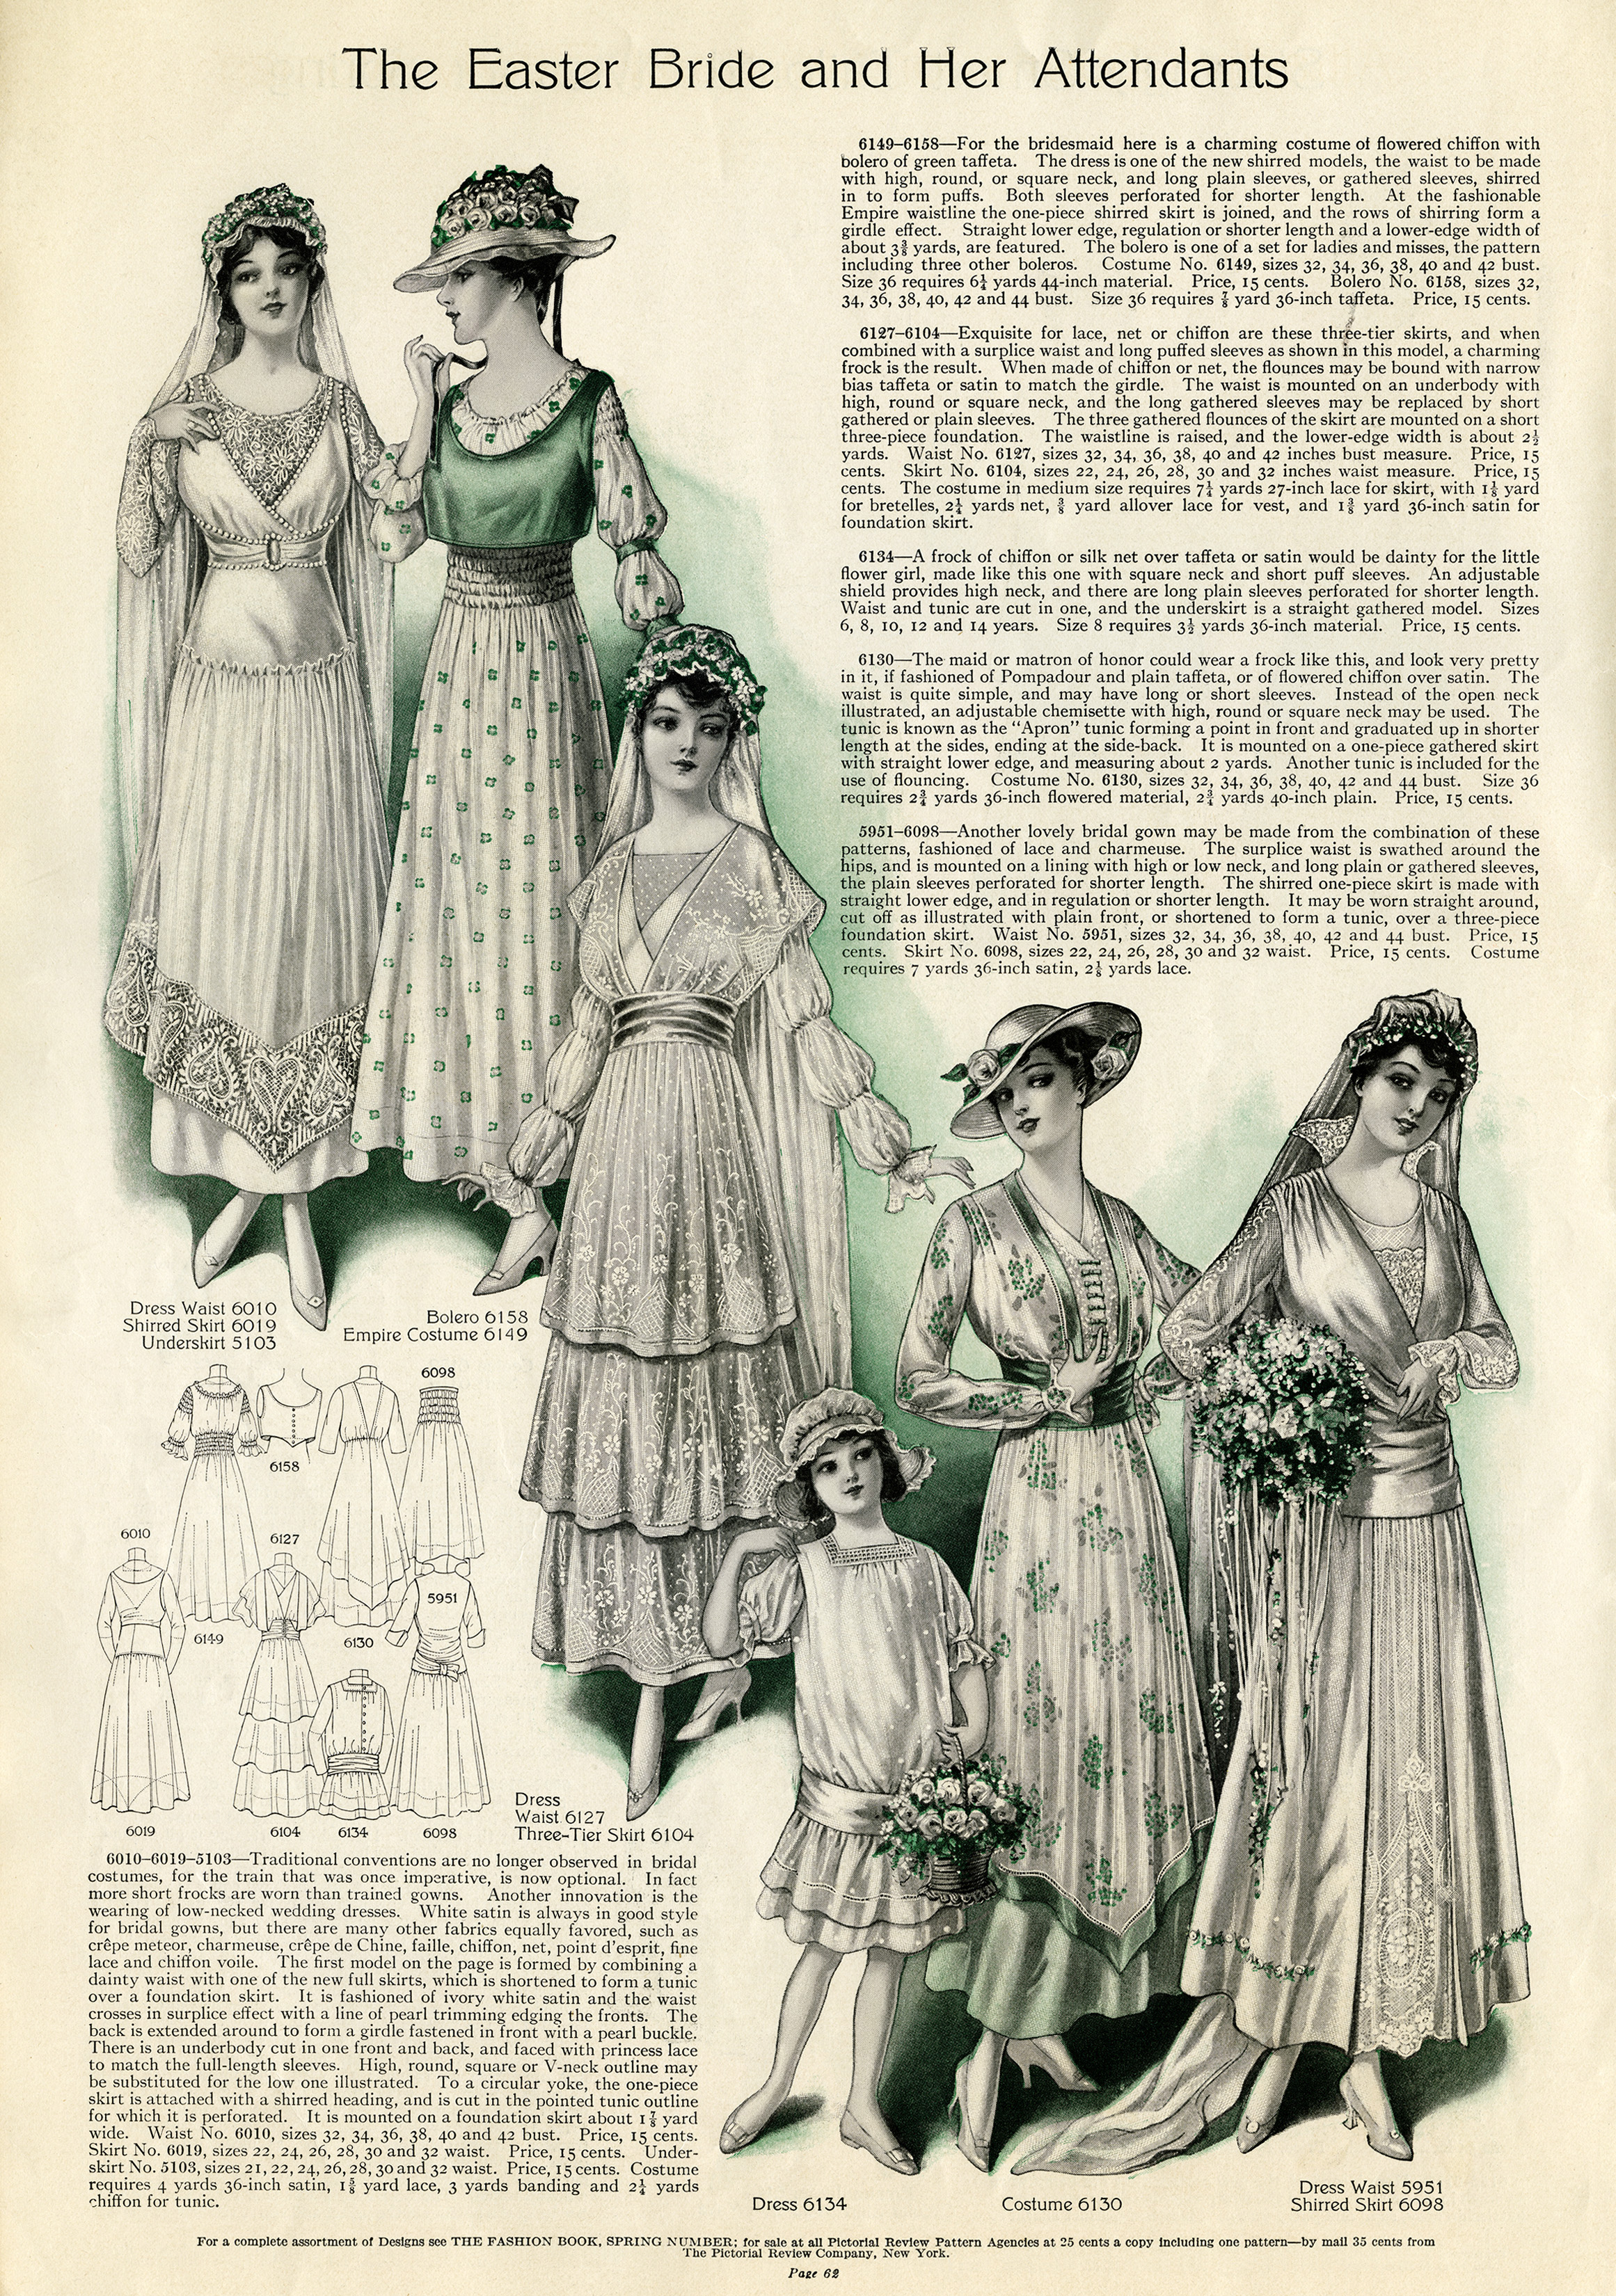 Vintage Wedding Clip Art Edwardian Bride Illustration Antique Bridesmaid Dress Flowergirl Clipart